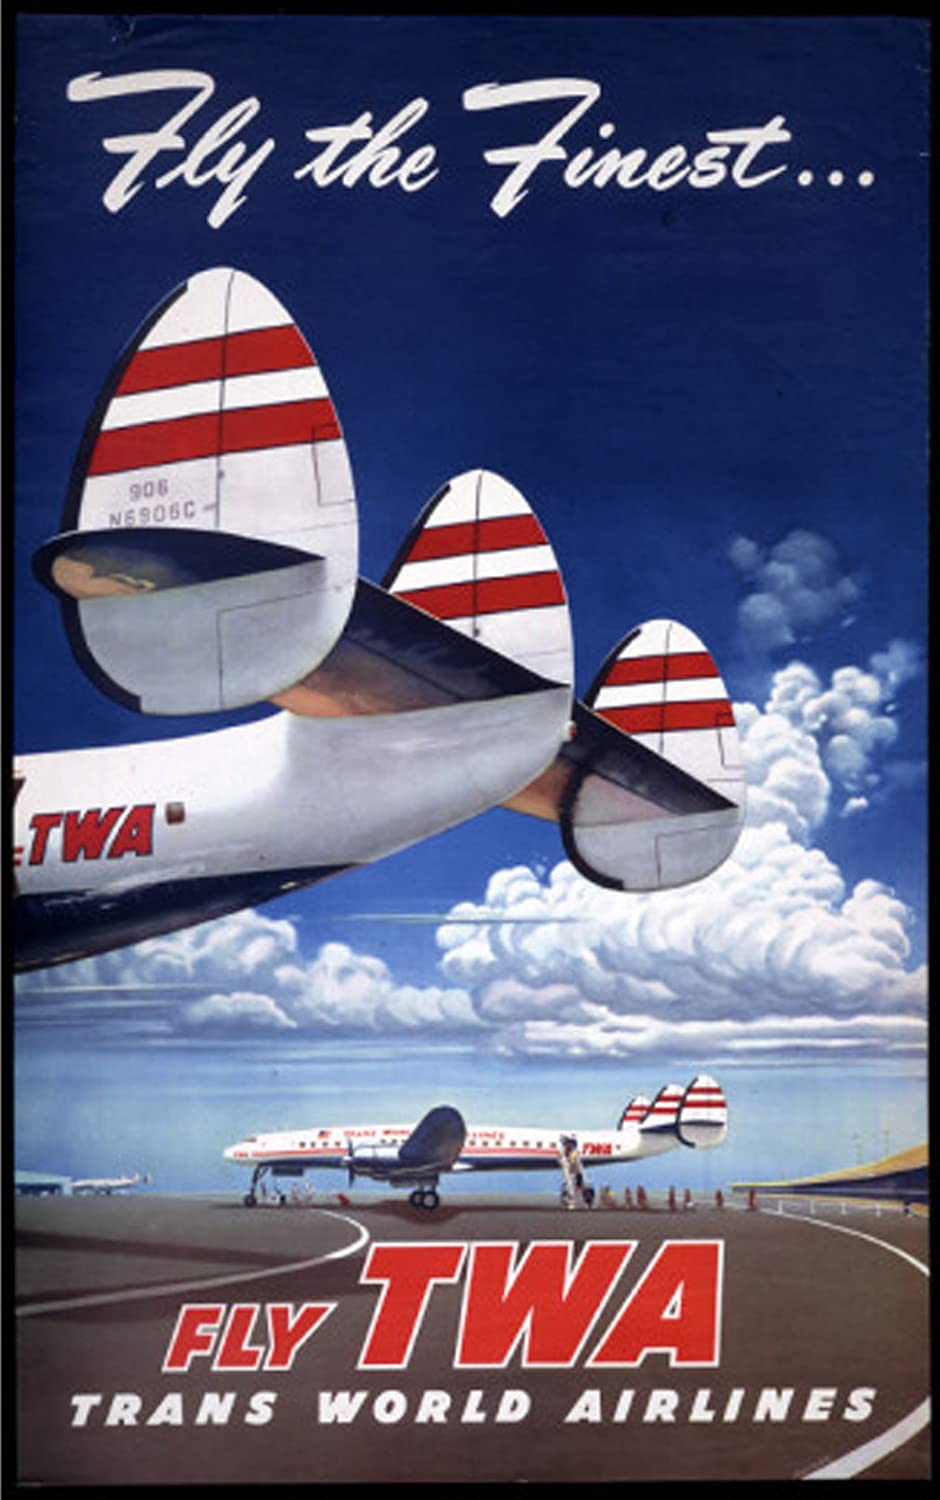 US History of Tourism, first coast to coast flight: Transcontinental Air Transport (TAT) was an airline founded in 1928 by Clement Melville Keys that merged in 1930 with Western Air Express to form what became TWA.